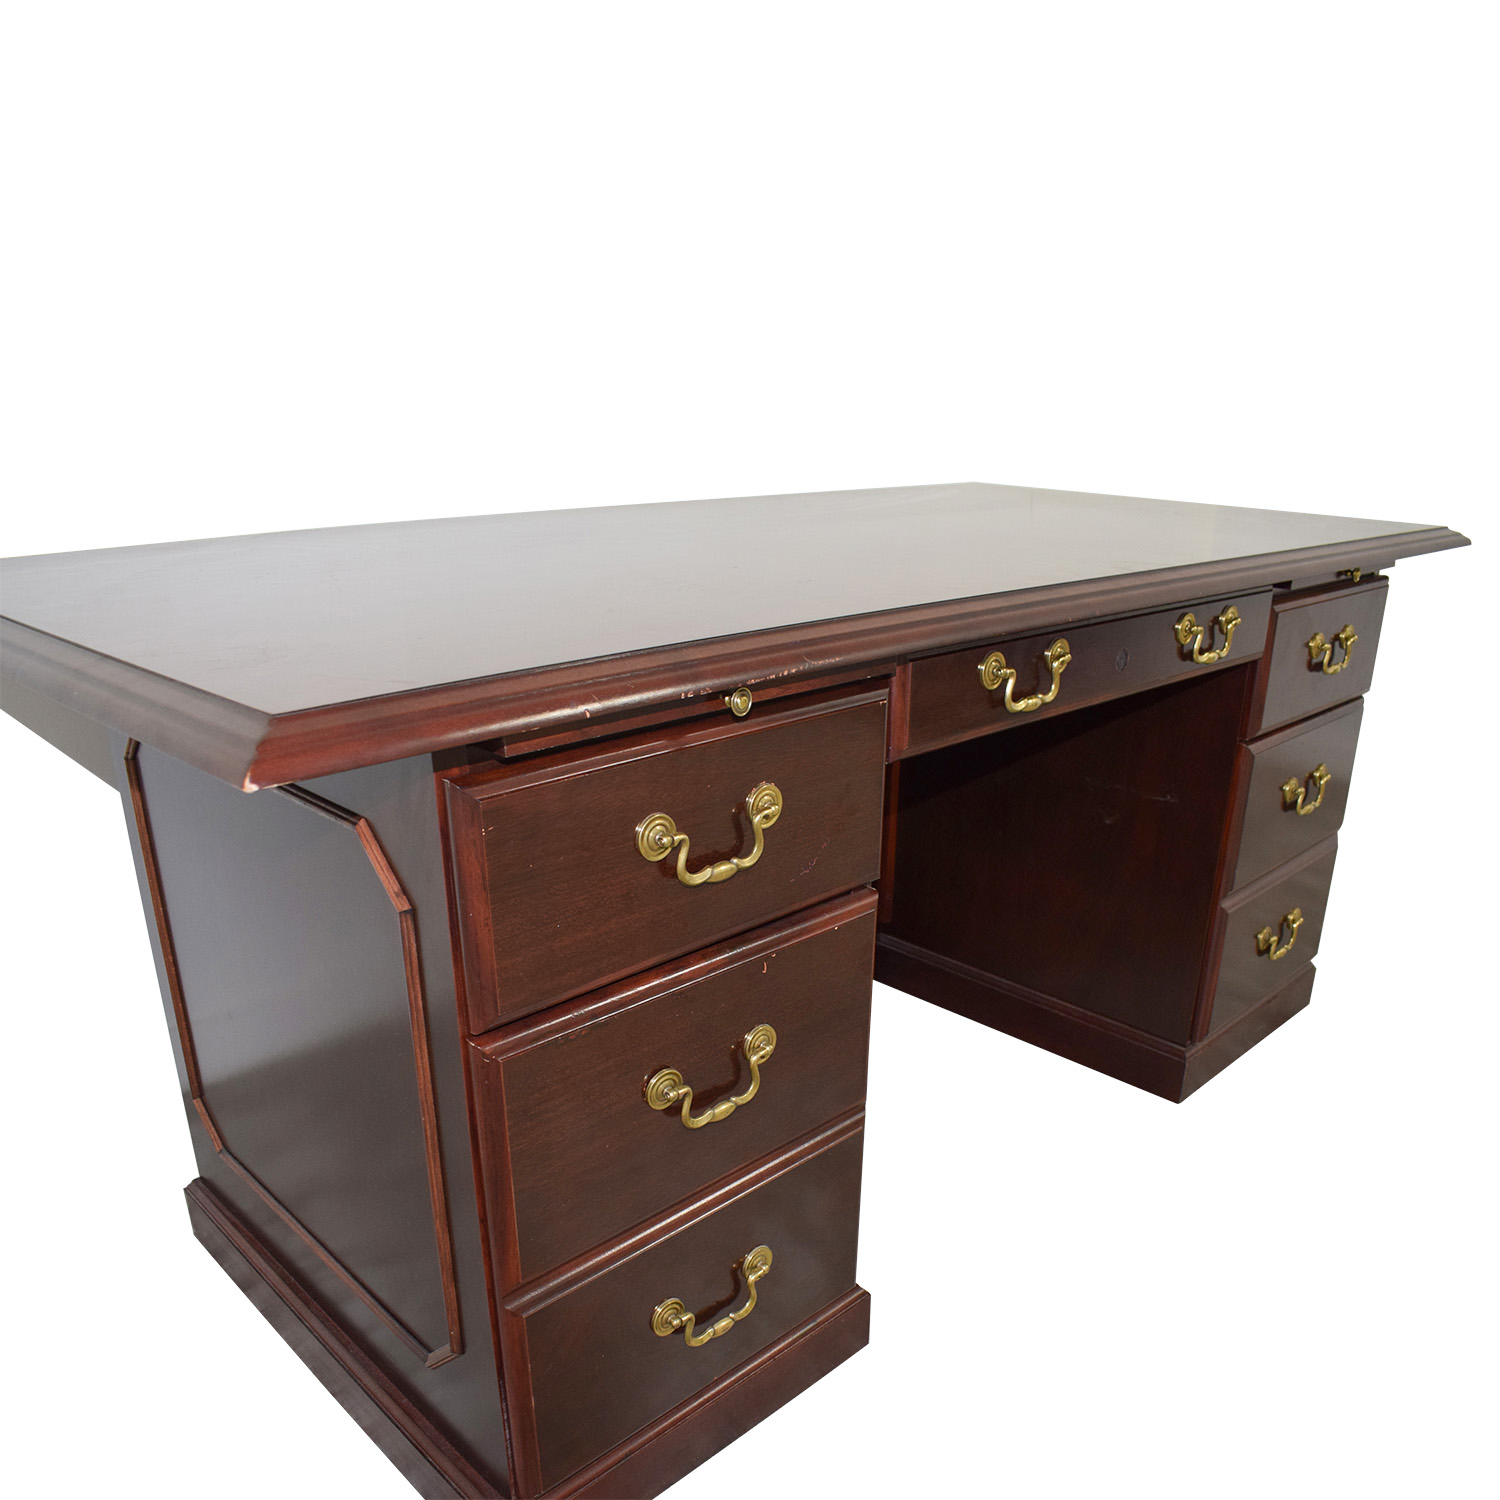 Mahogany Desk with Seven-Drawers / Cabinets & Sideboards